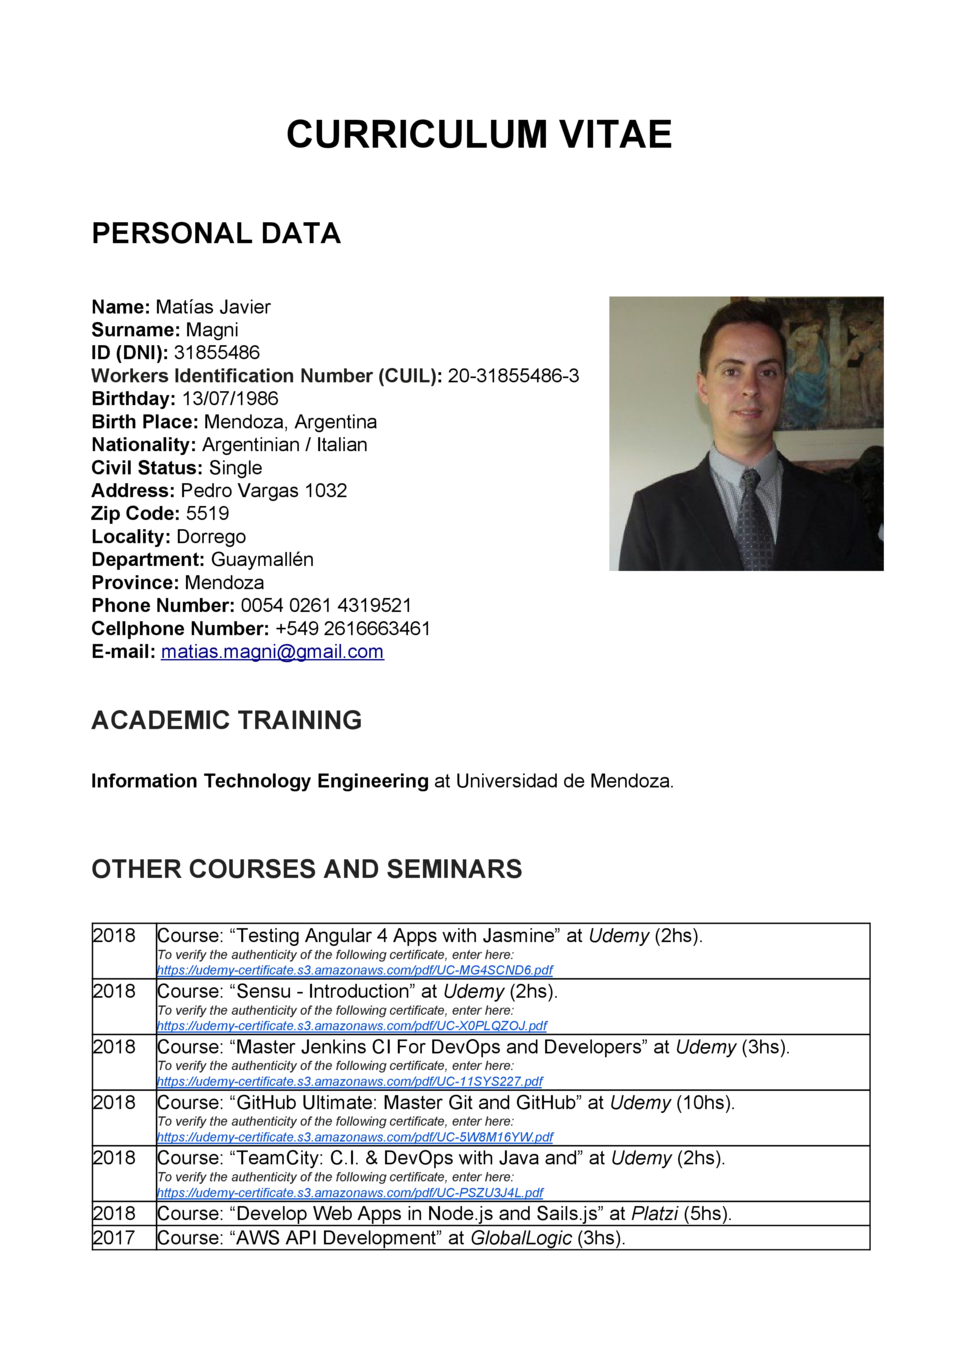 CURRICULUM VITAE PERSONAL DATA Name     Mat  as Javier Surname     Magni ID  DNI      31855486 Workers Identification Numb...